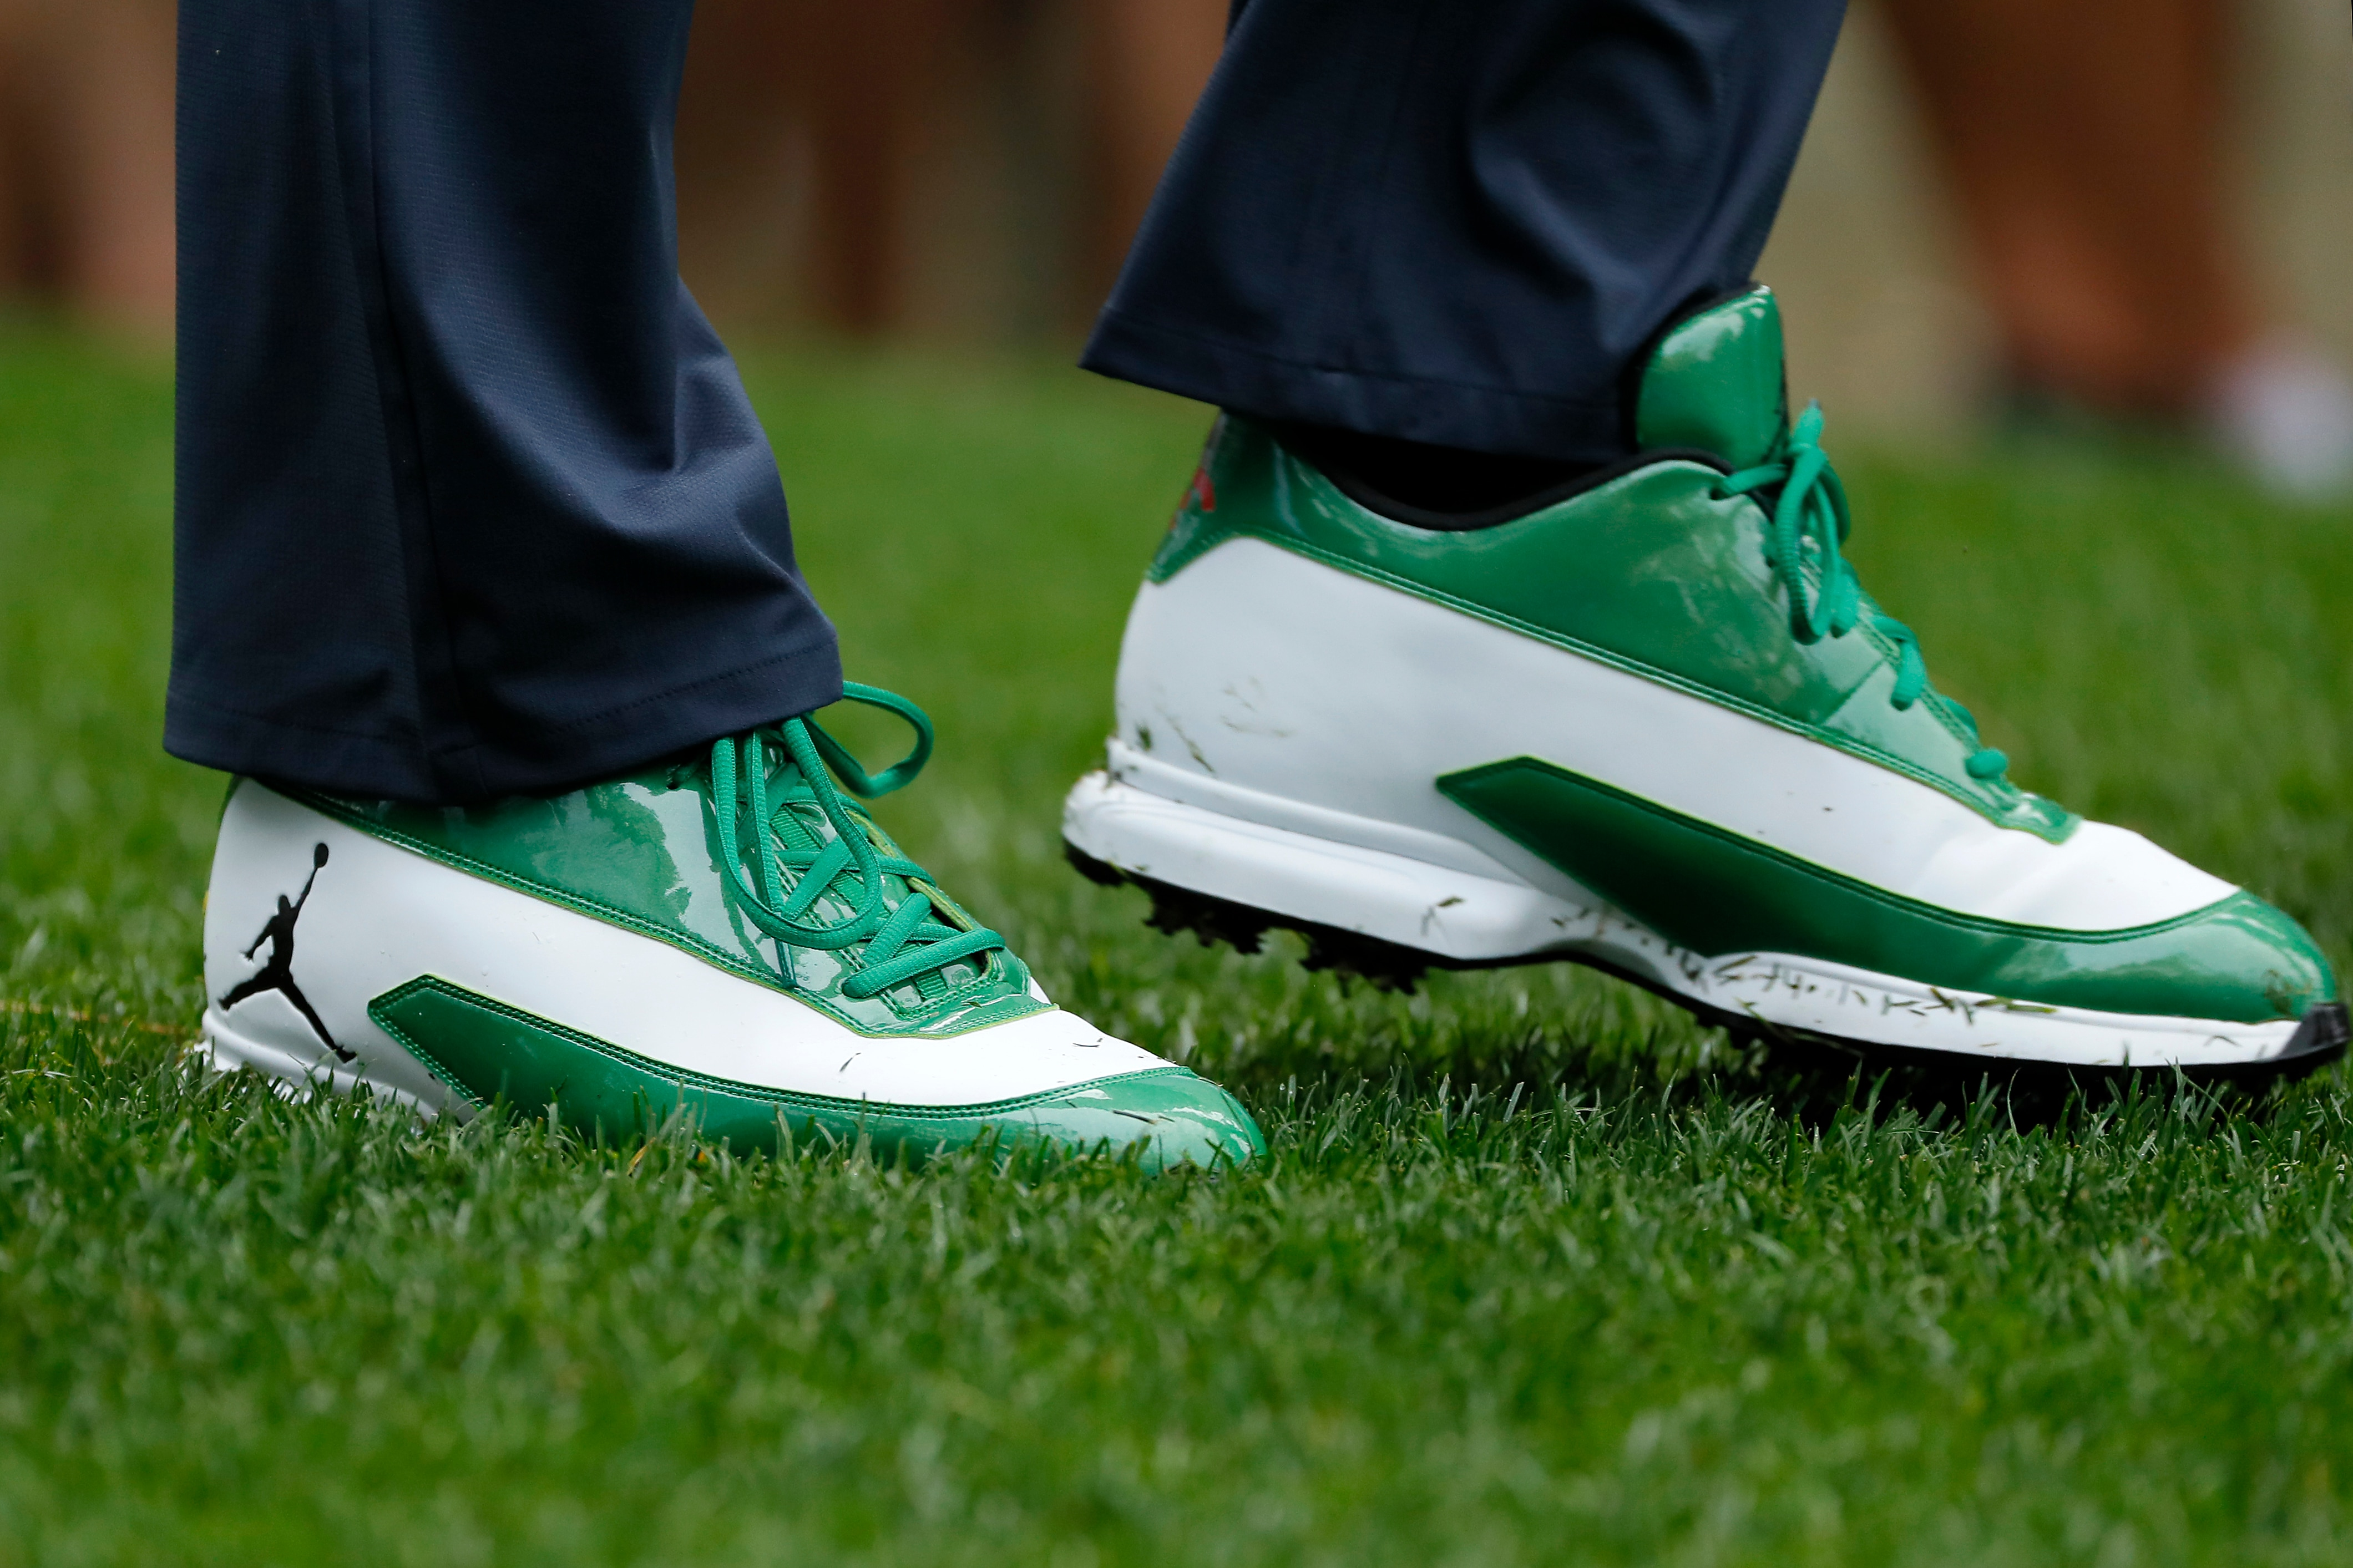 Keegan Bradley's shoes